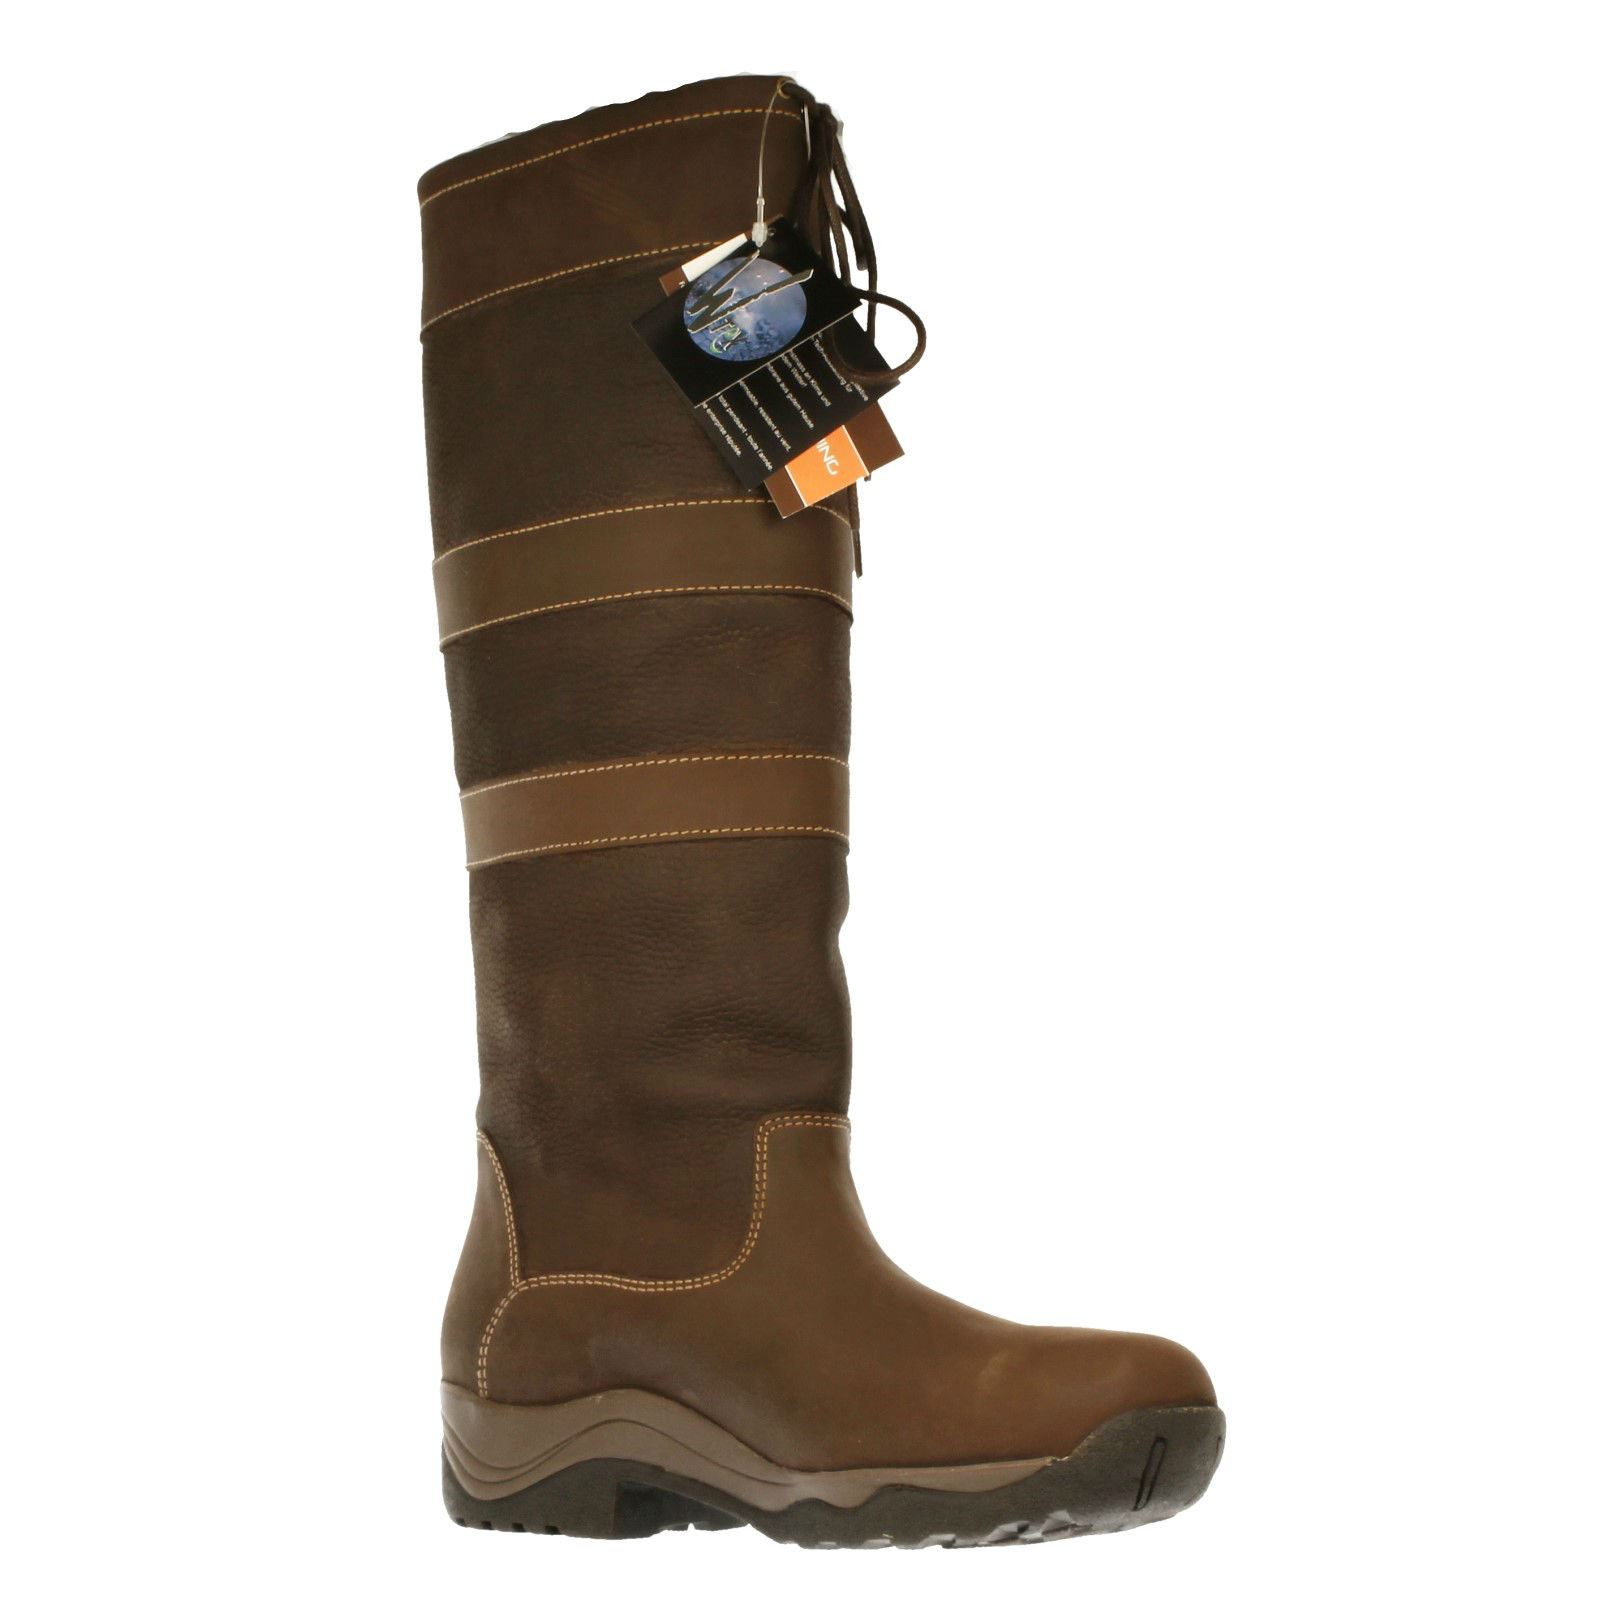 Ladies Taurus Country Boots Style Holkham Rider -W